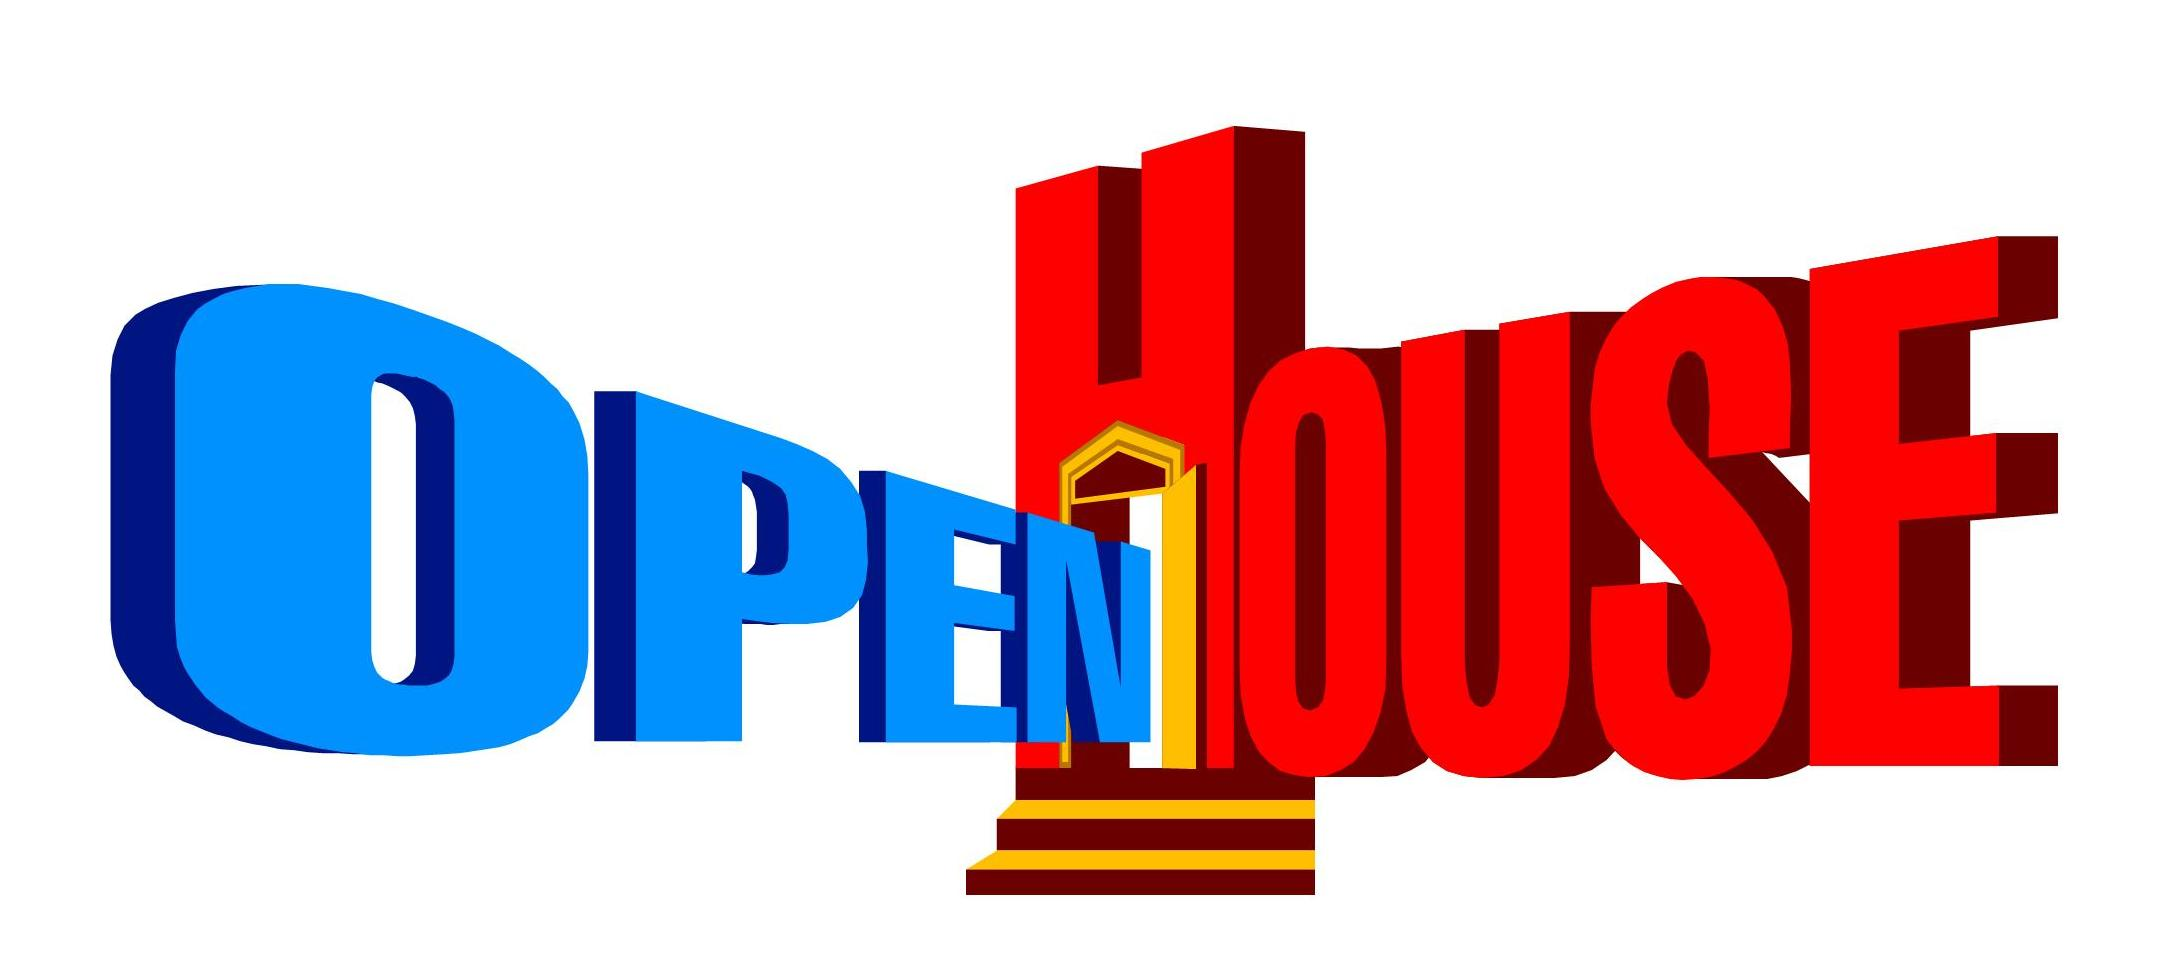 School open house clipart free images 3